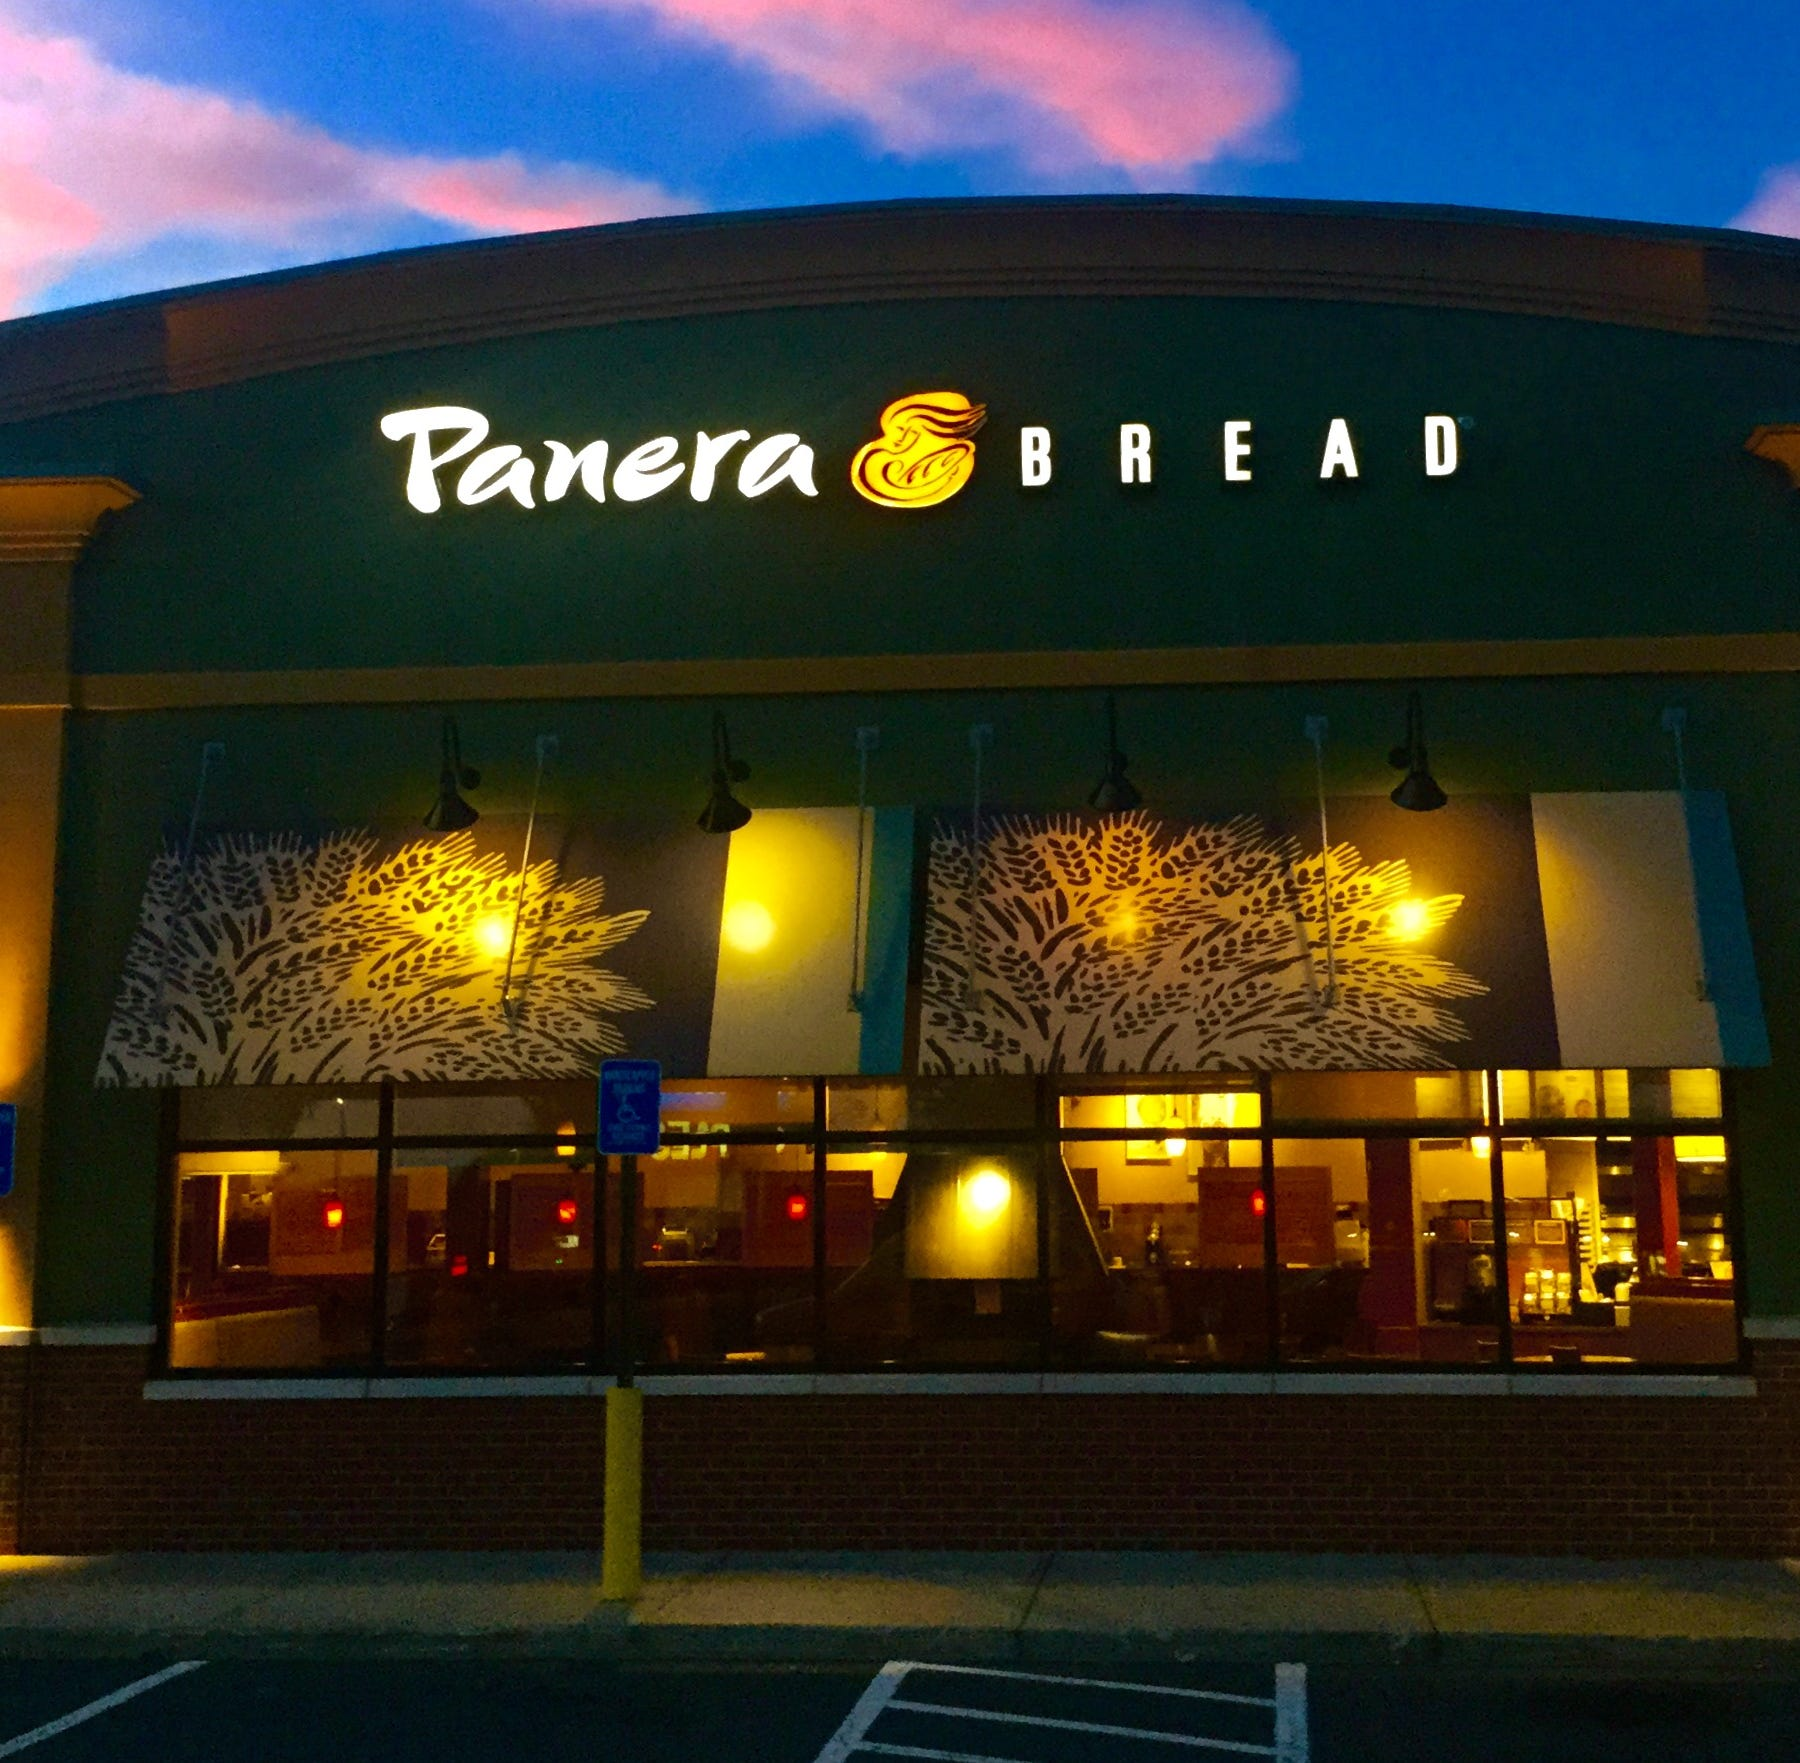 Panera to arrive on South Street in Lafayette by early 2019